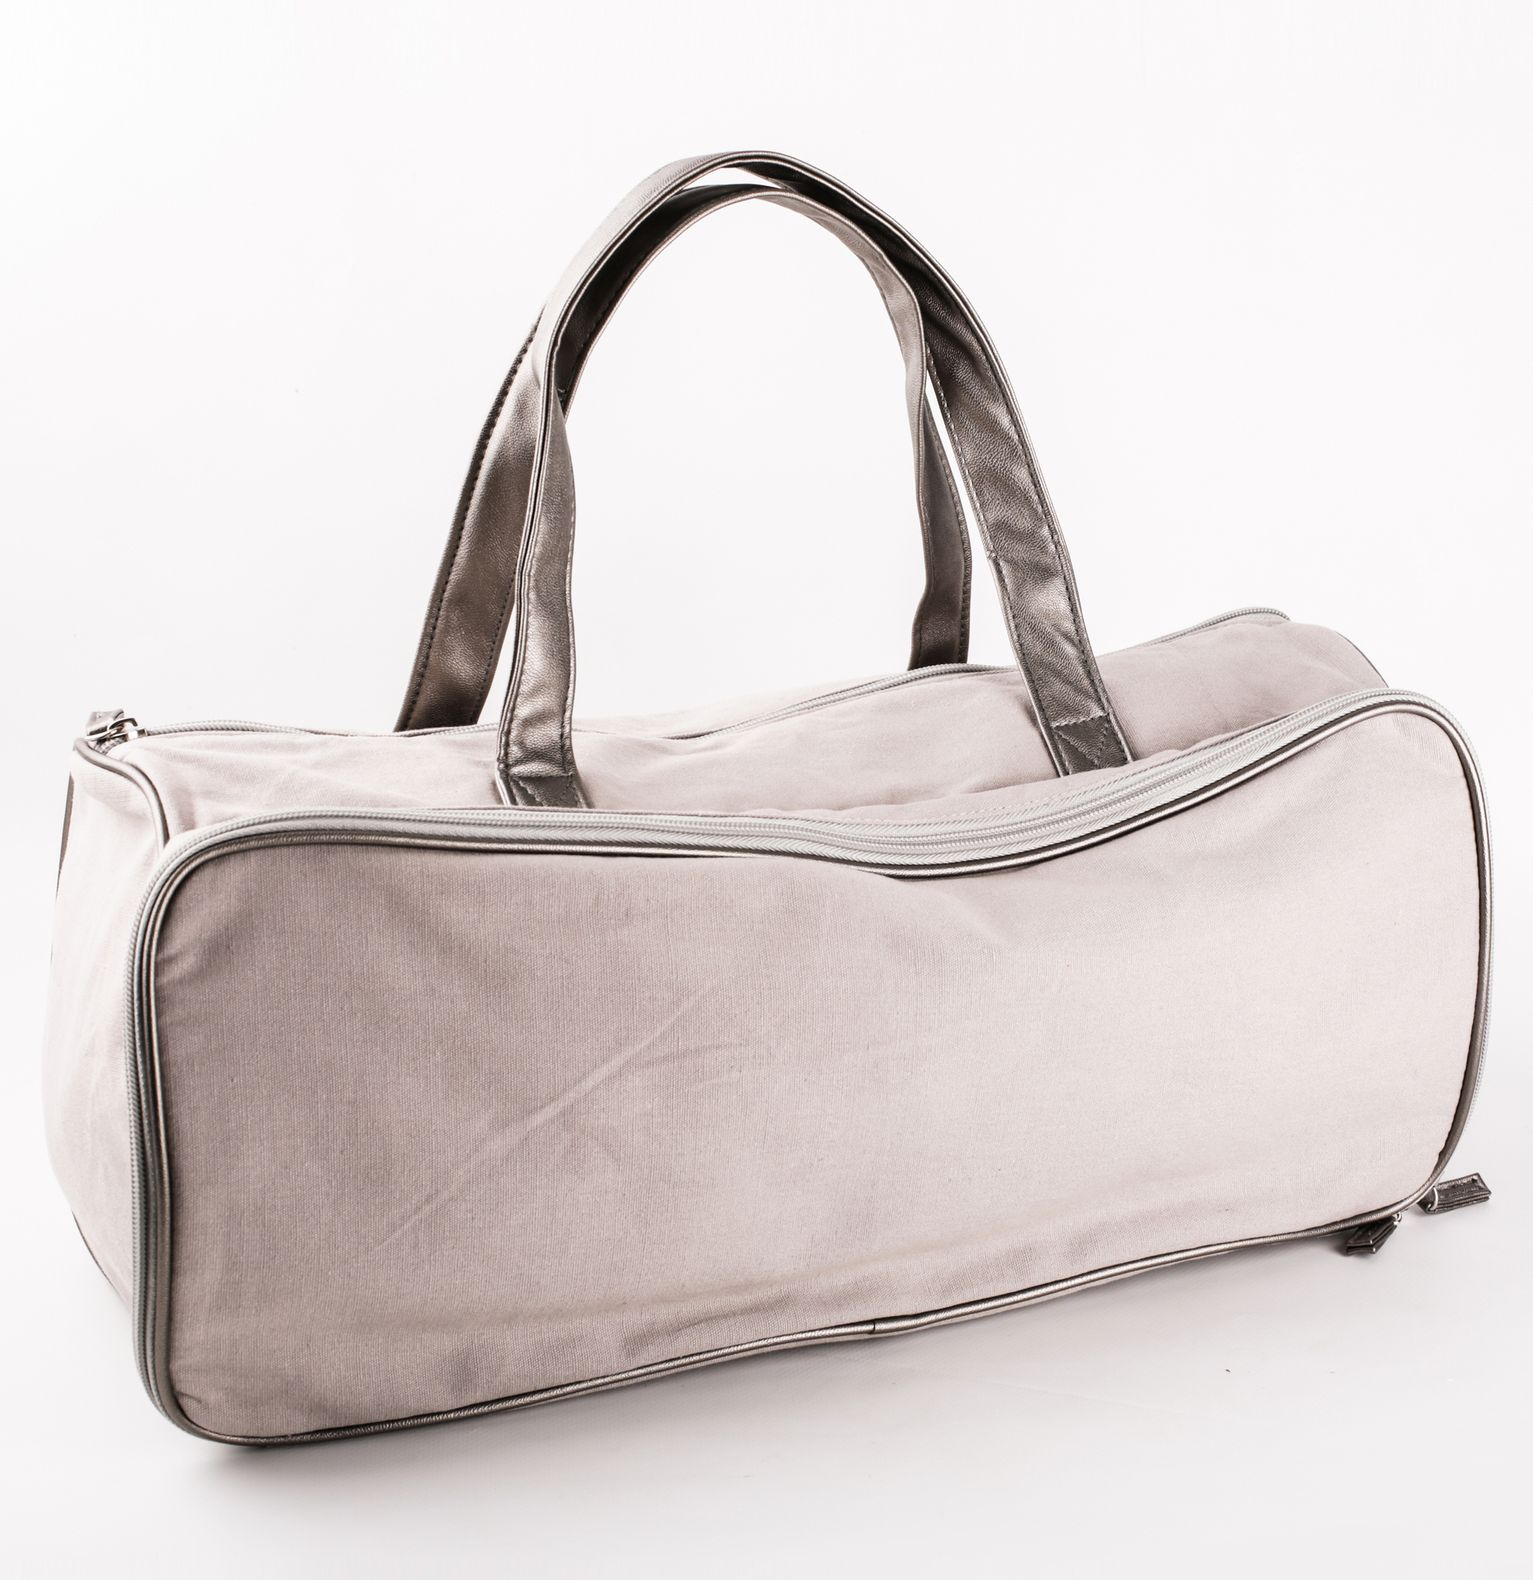 Sac tricot - collection nomade